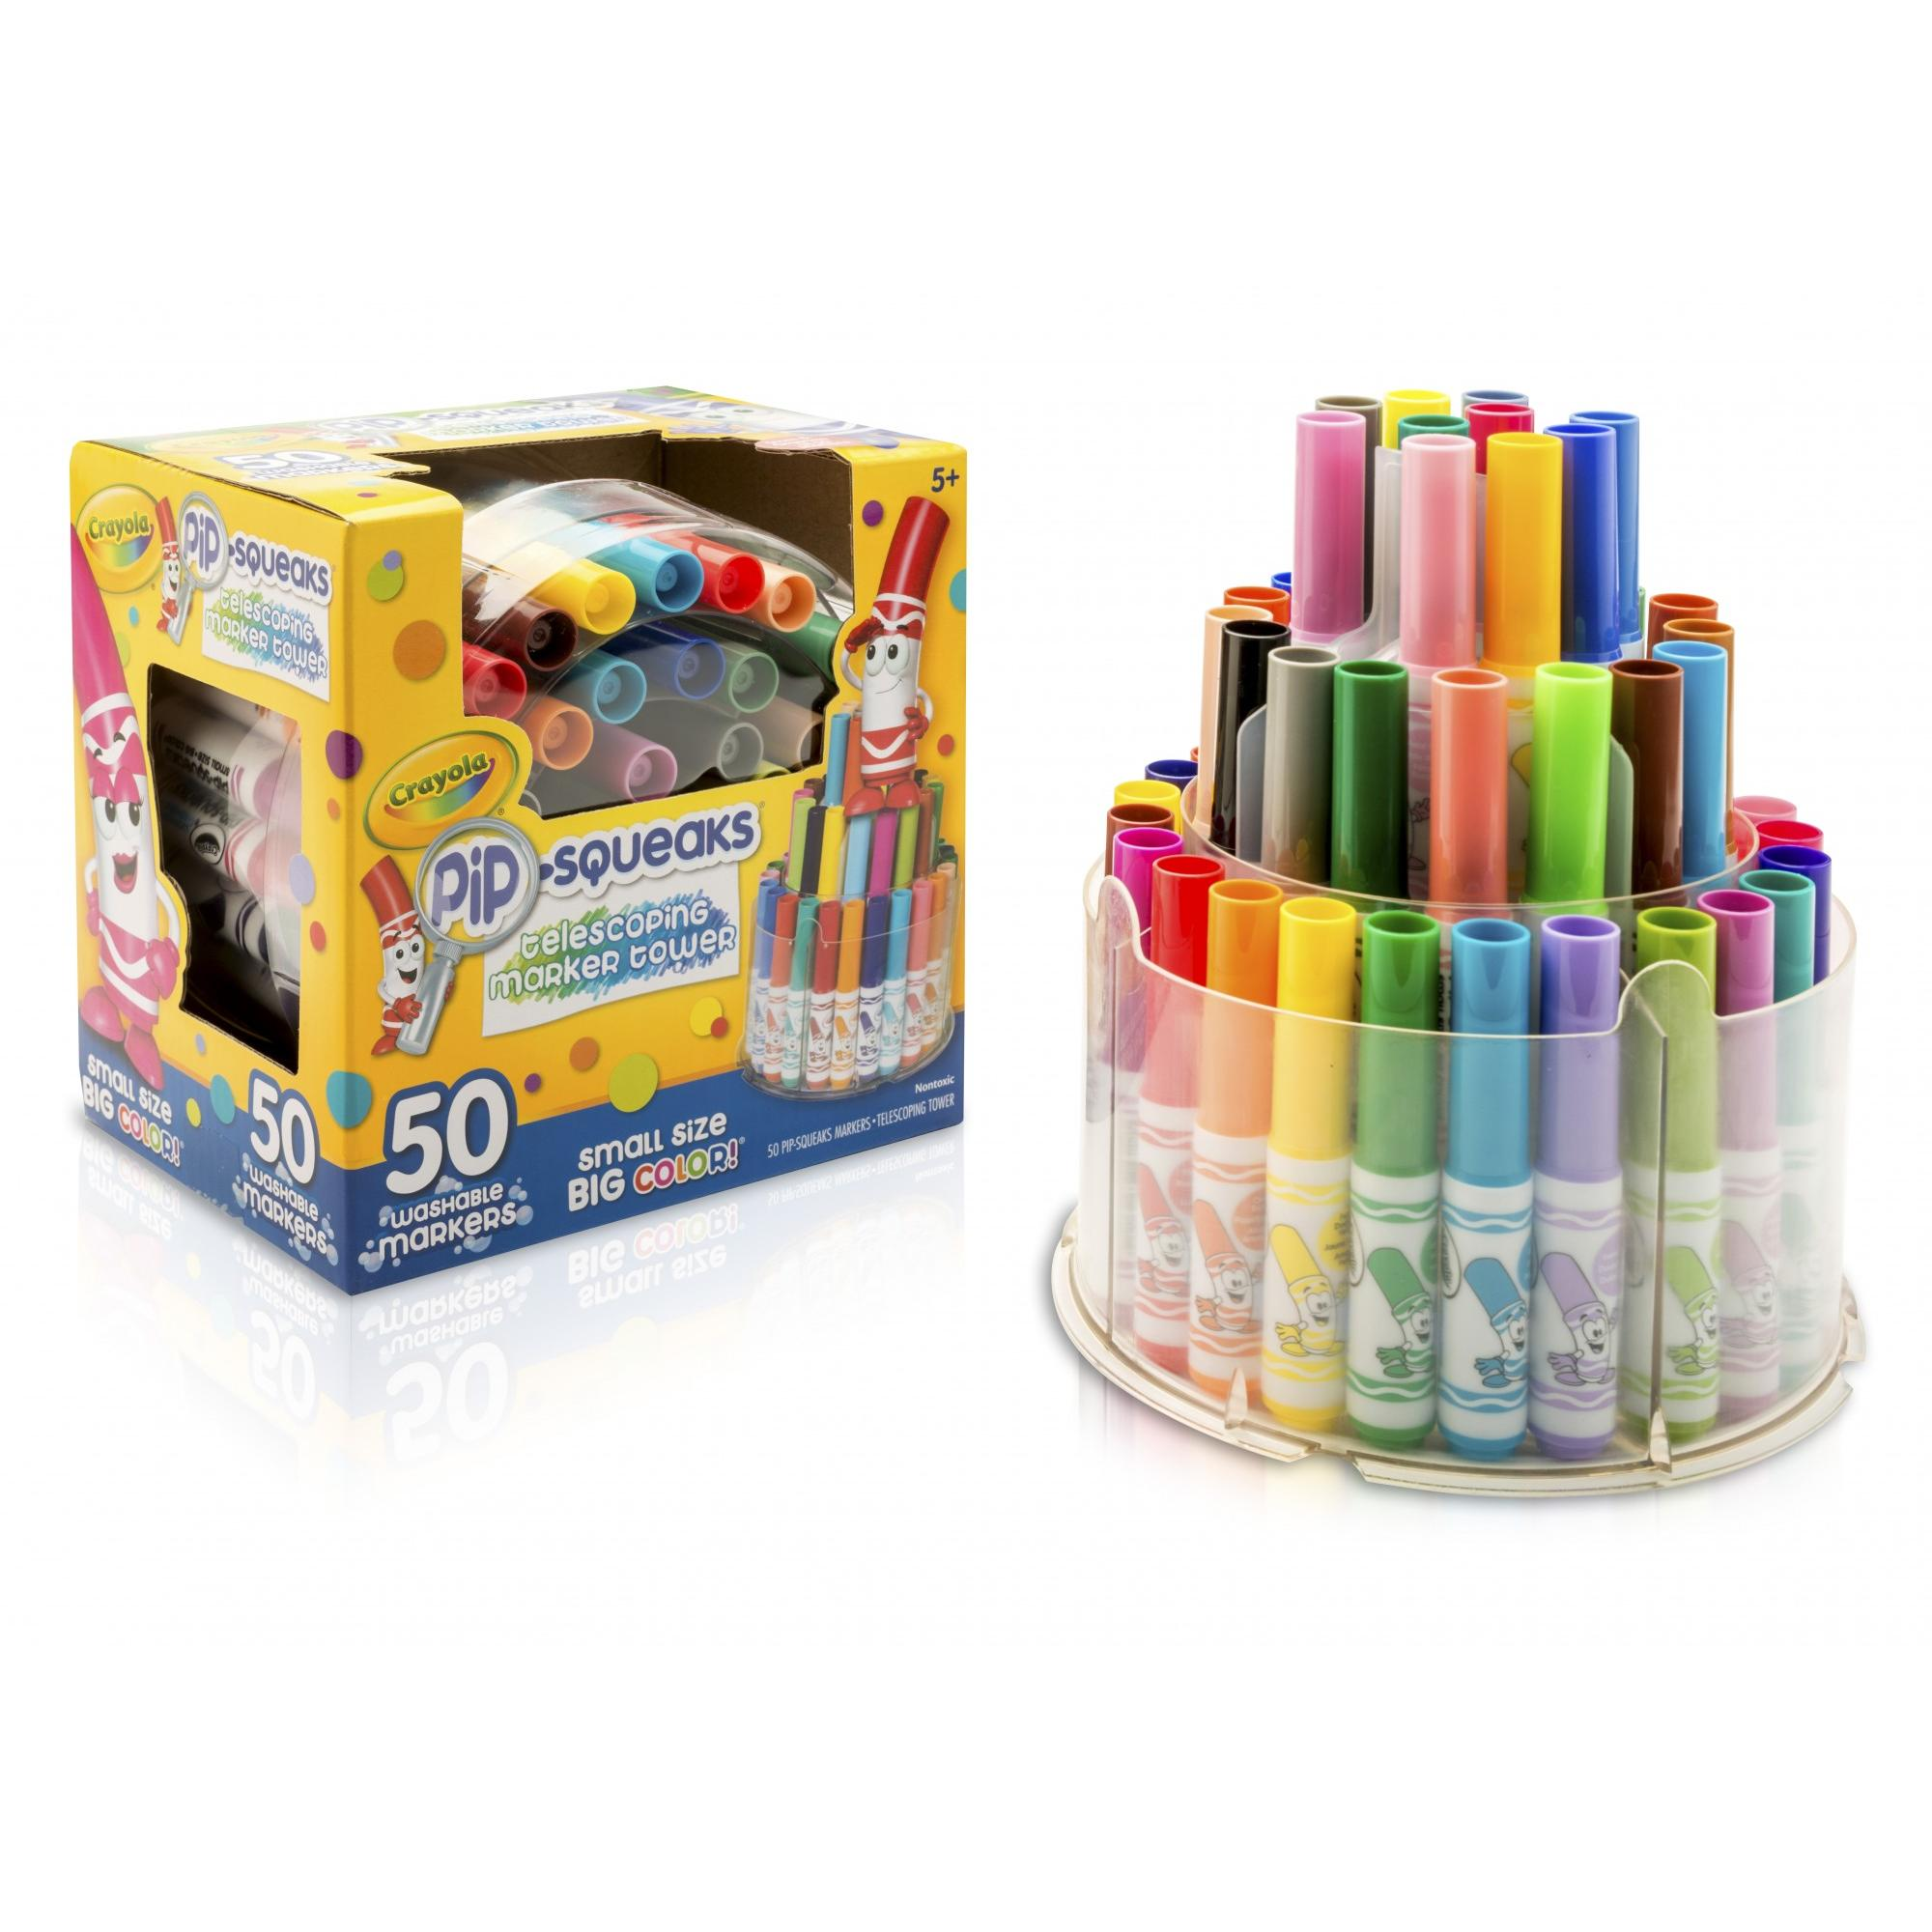 Crayola Pip-Squeaks Washable Markers Telescoping Tower, 50-Count